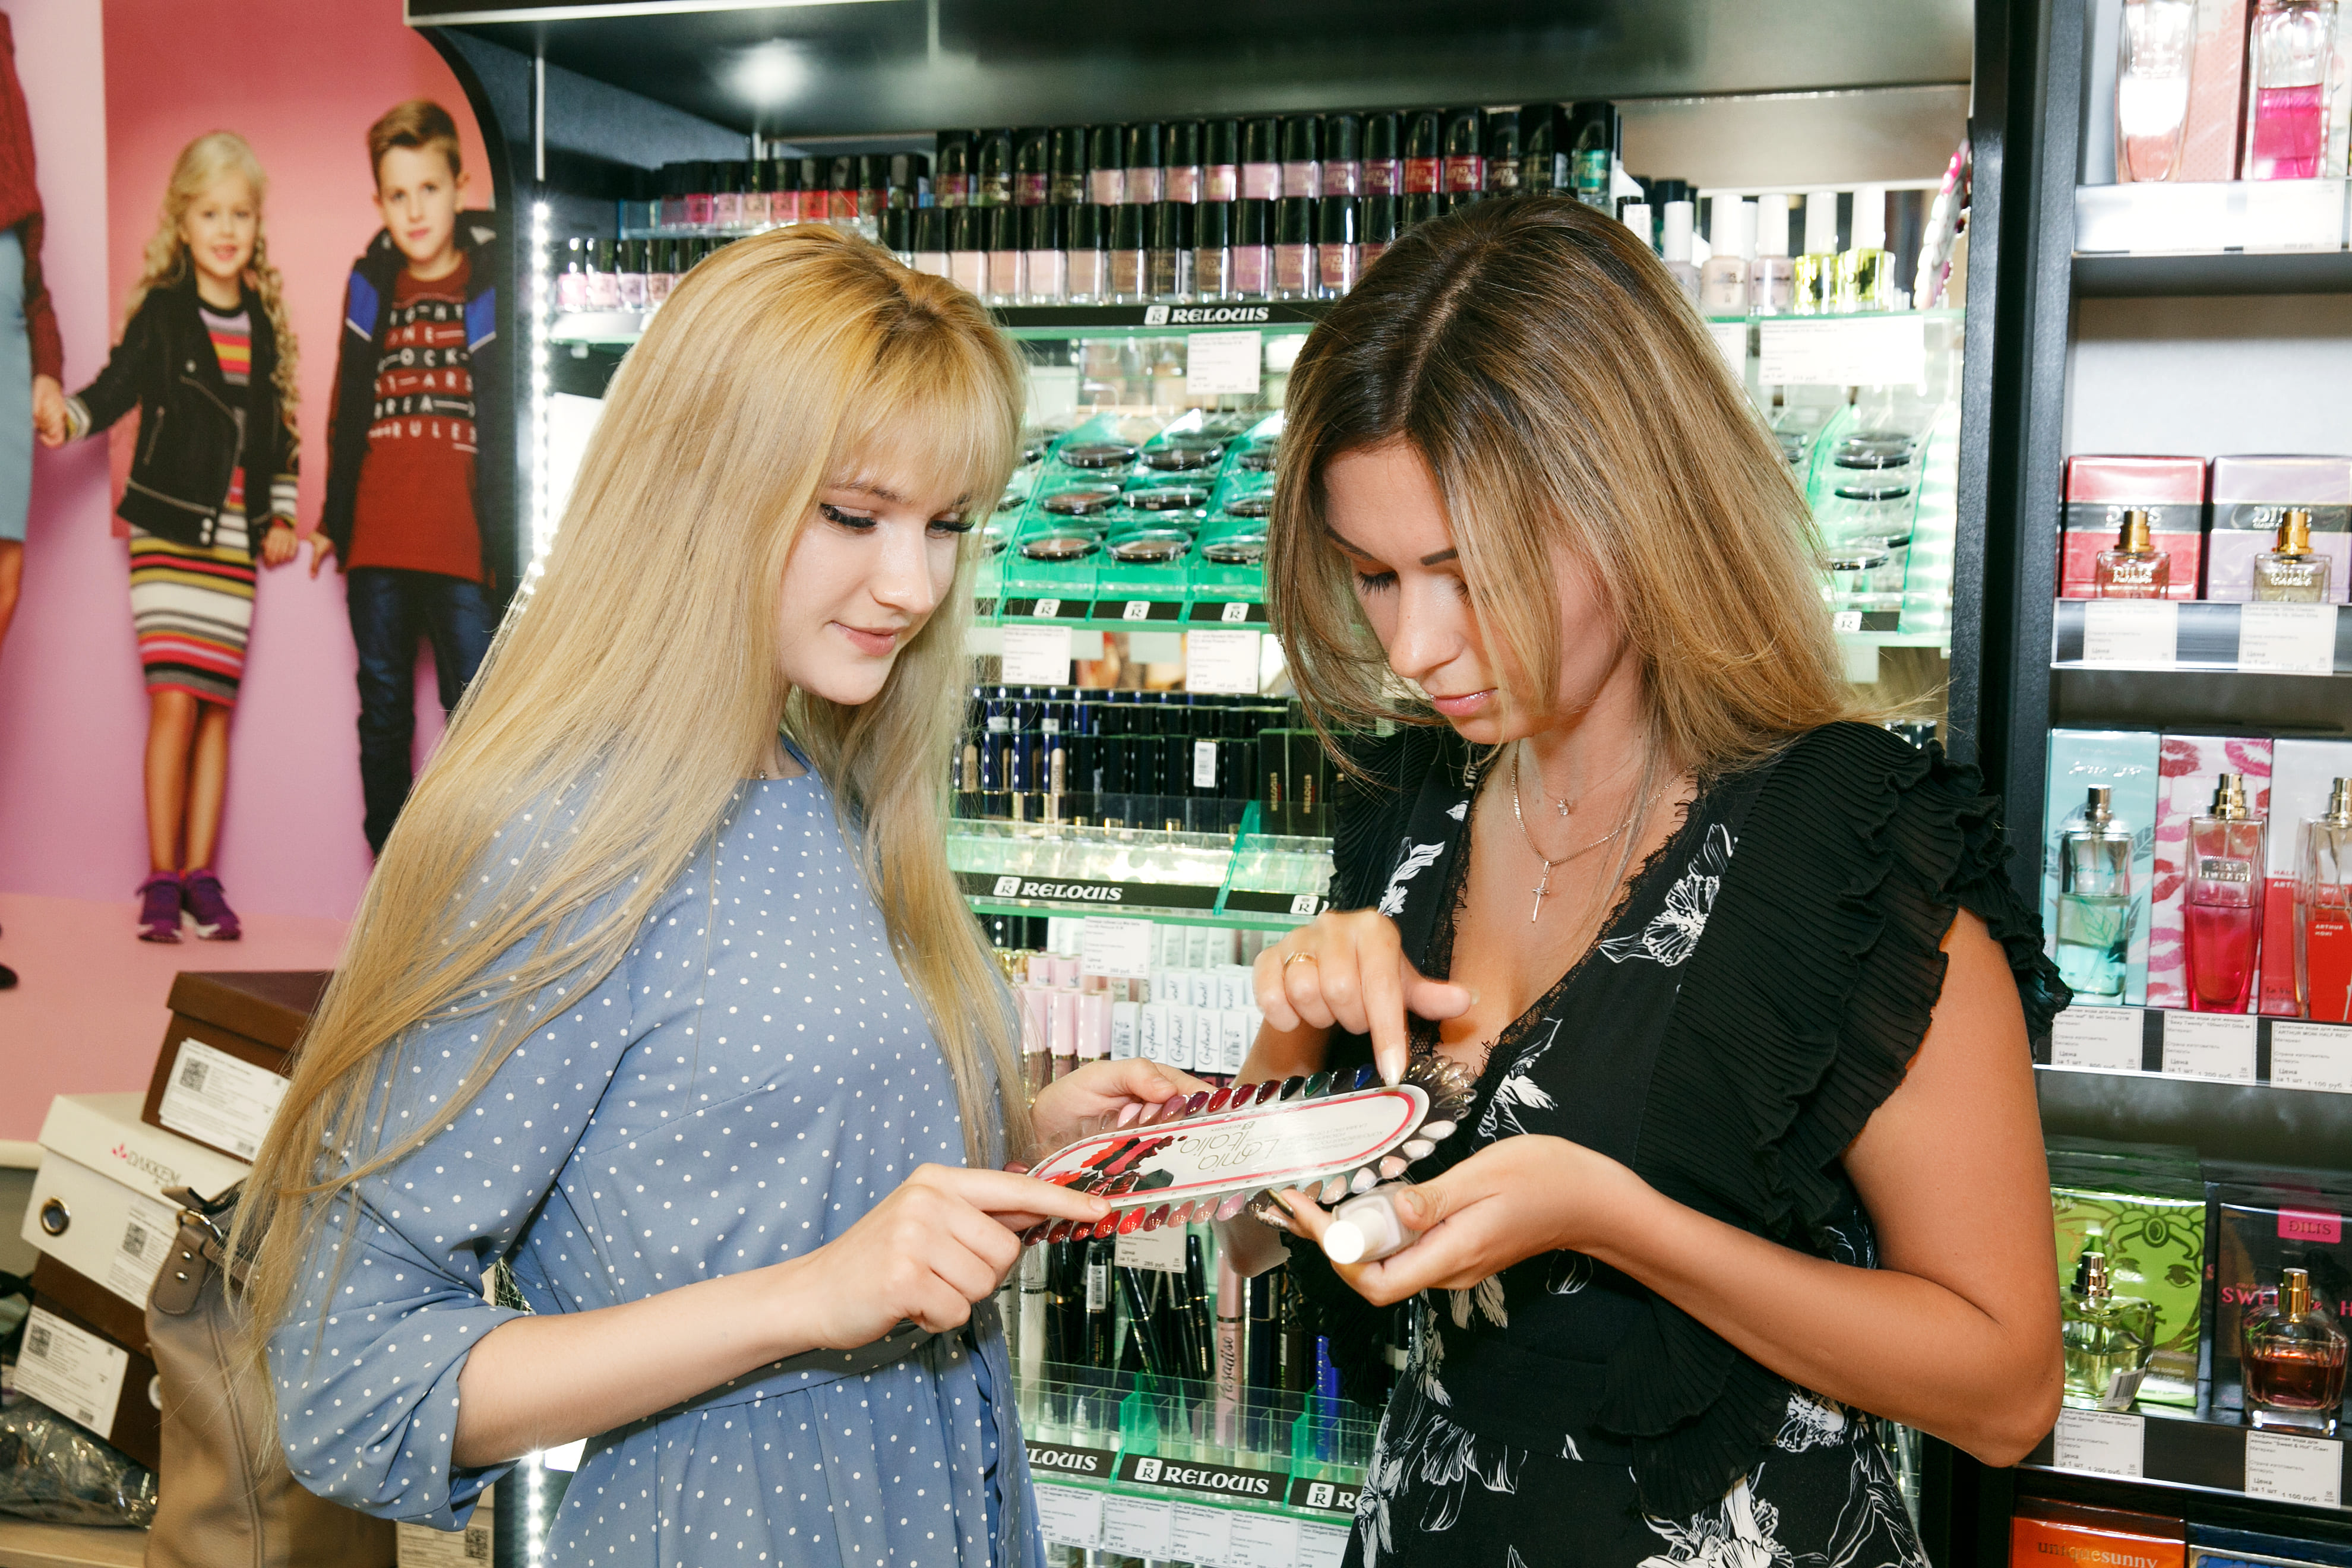 IIn June, Like-For-Like Sales Of Cosmetics In Obuv Rossii Stores Increased By 2.3 Times